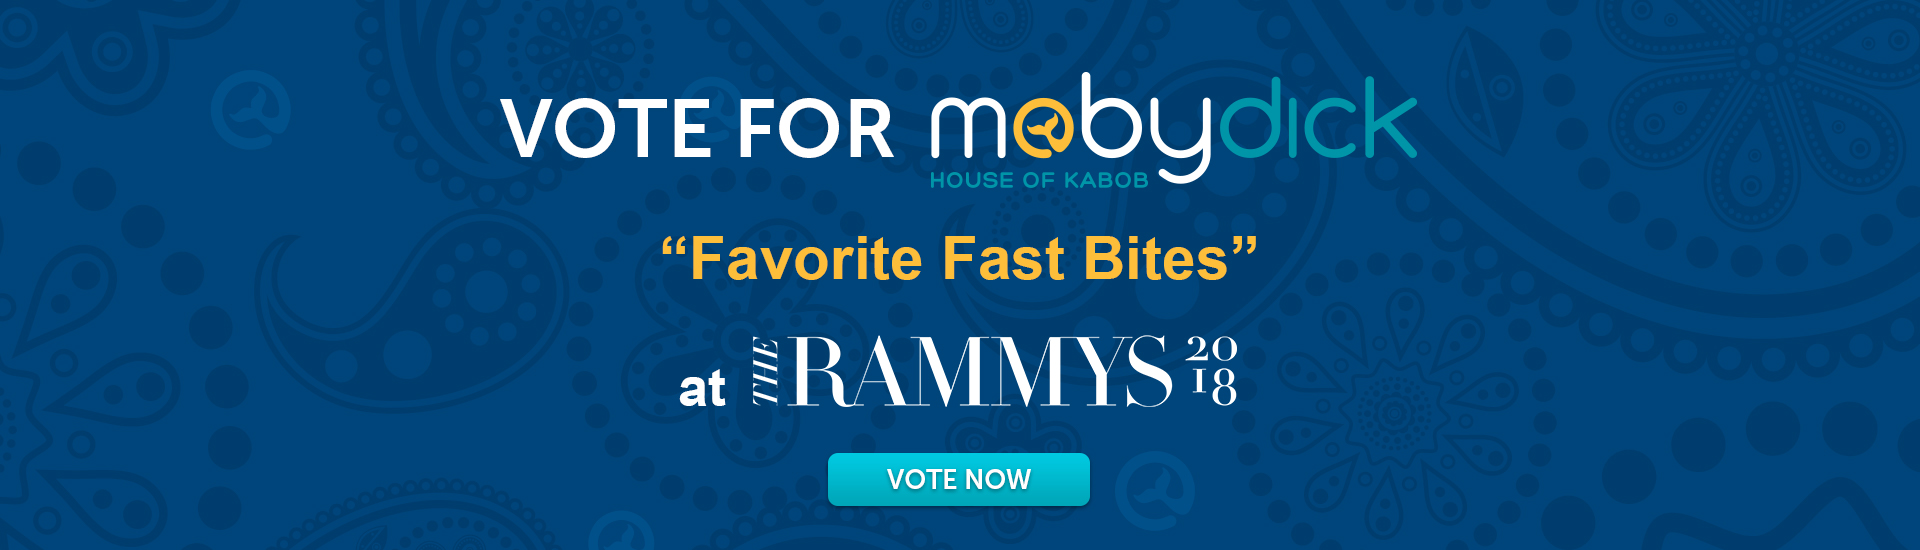 Vote for Moby Dick House of Kabob